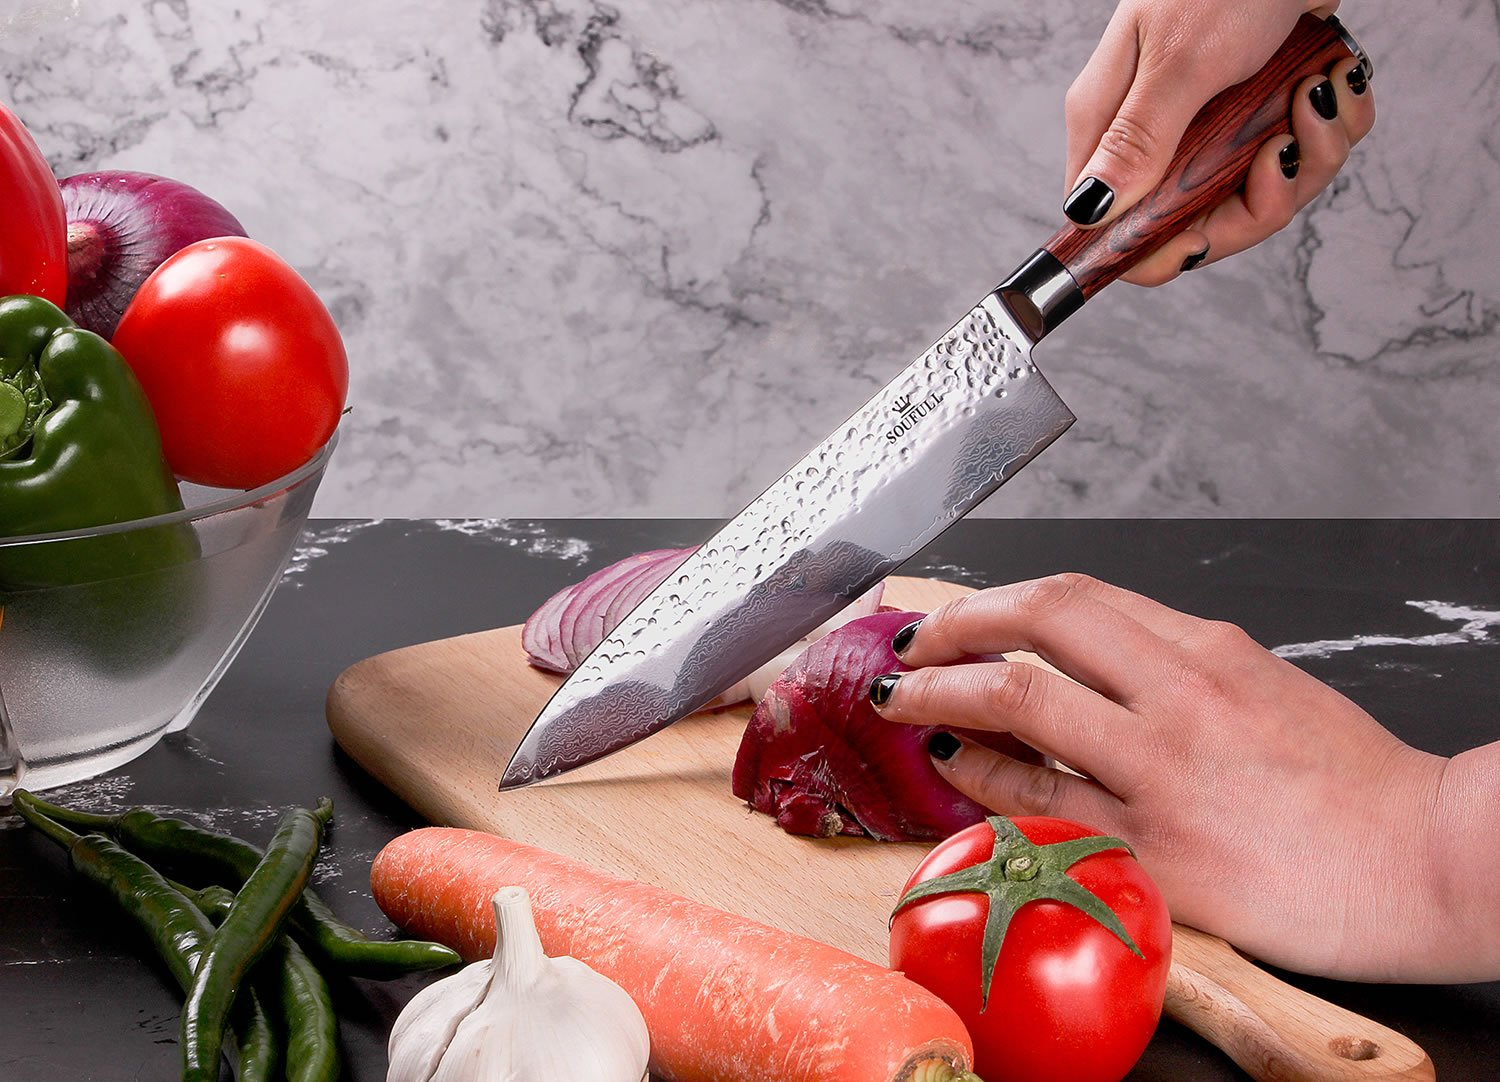 Damascus Chef Knife -Soufull 8 inch Knife Japanese VG10 Razor Sharp Well-Balanced - Stain & Corrosion Resistant Kitchen Knife - Professional Chefs Knives by Soufull (Image #7)